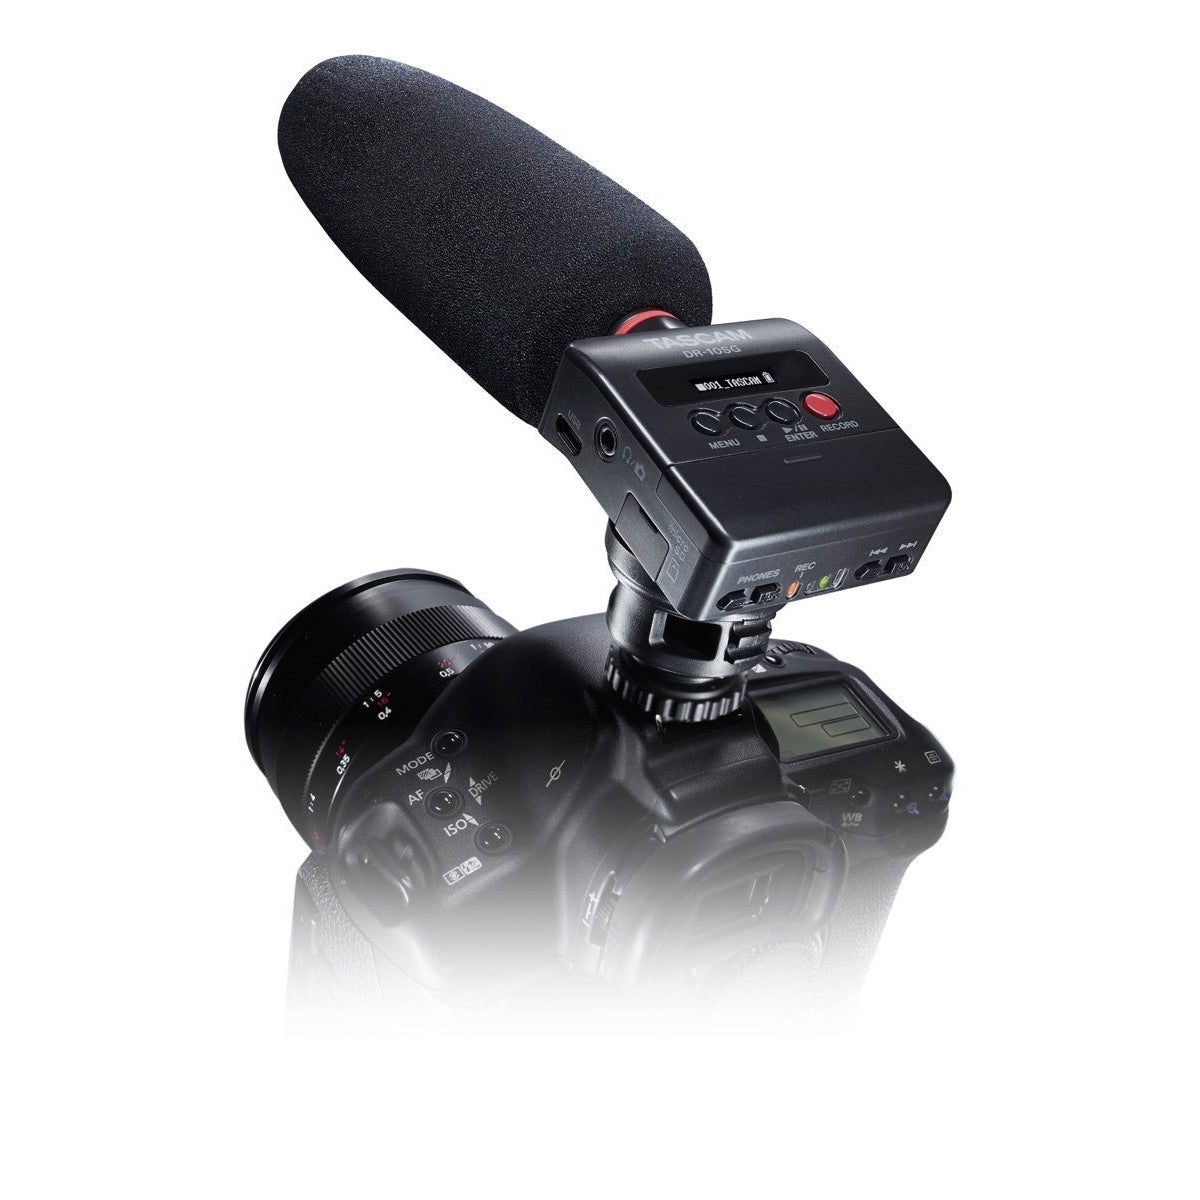 Tascam DR-10SG Shotgun Microphone and Digital Recorder